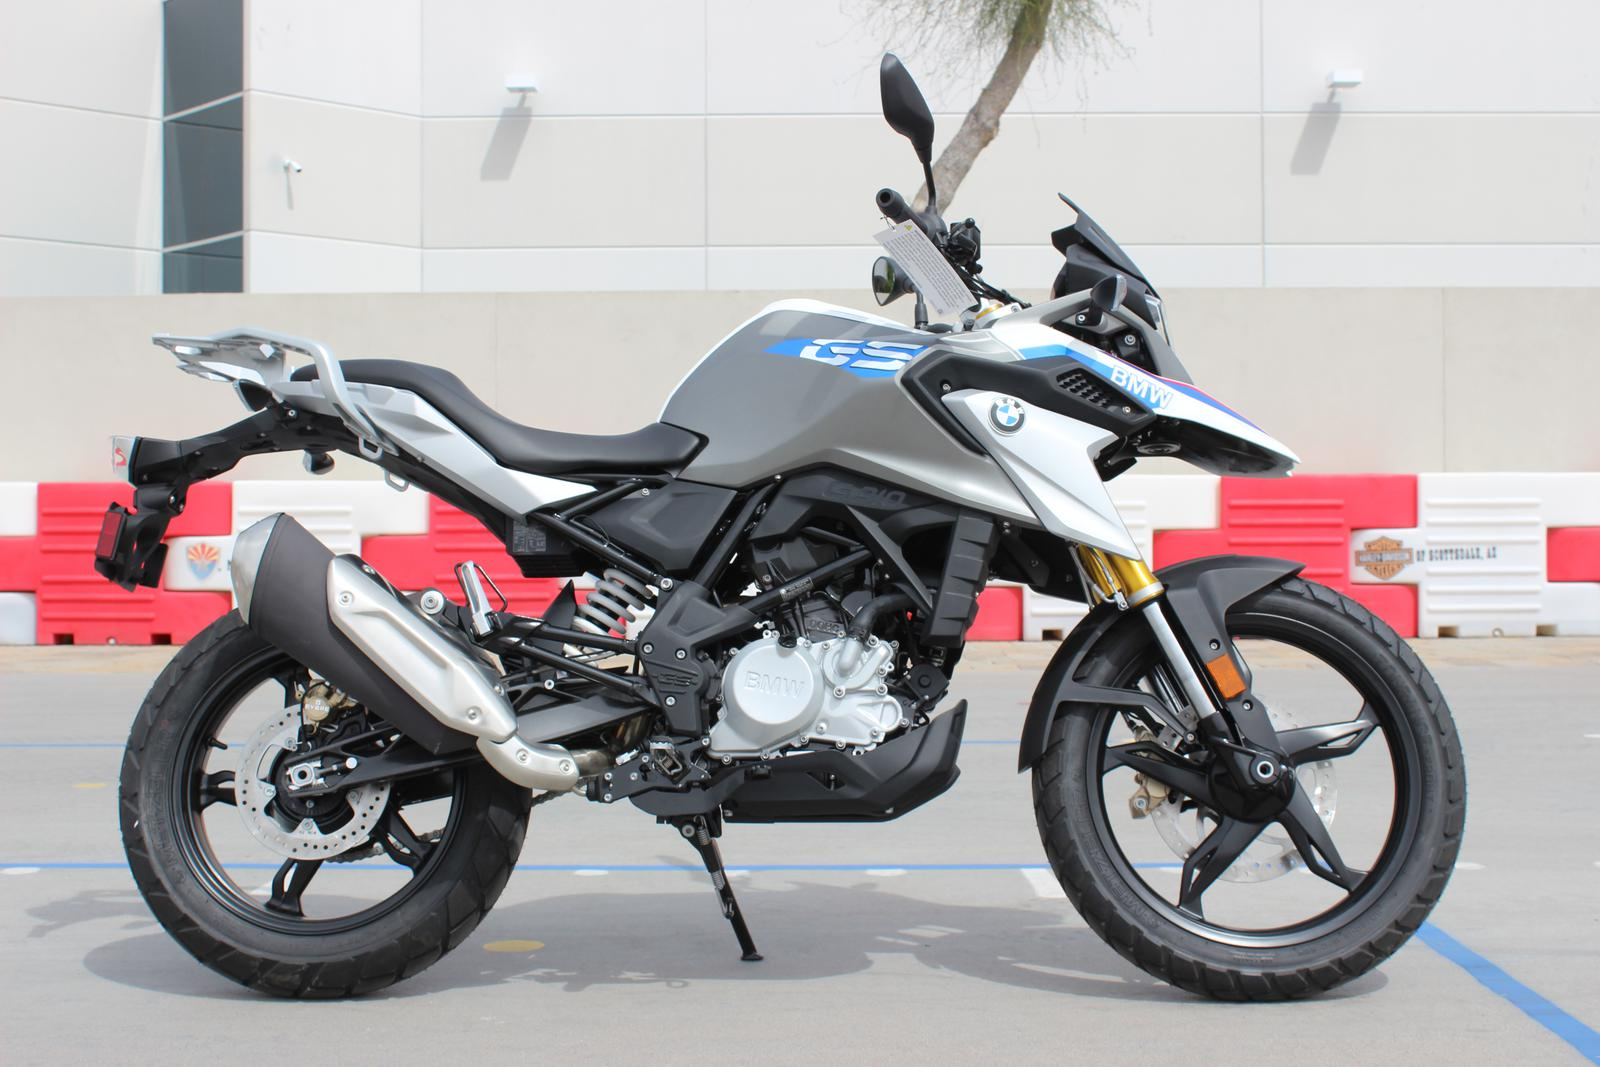 2019 Bmw G310 Gs For Sale In Scottsdale Az Go Az Motorcycles In